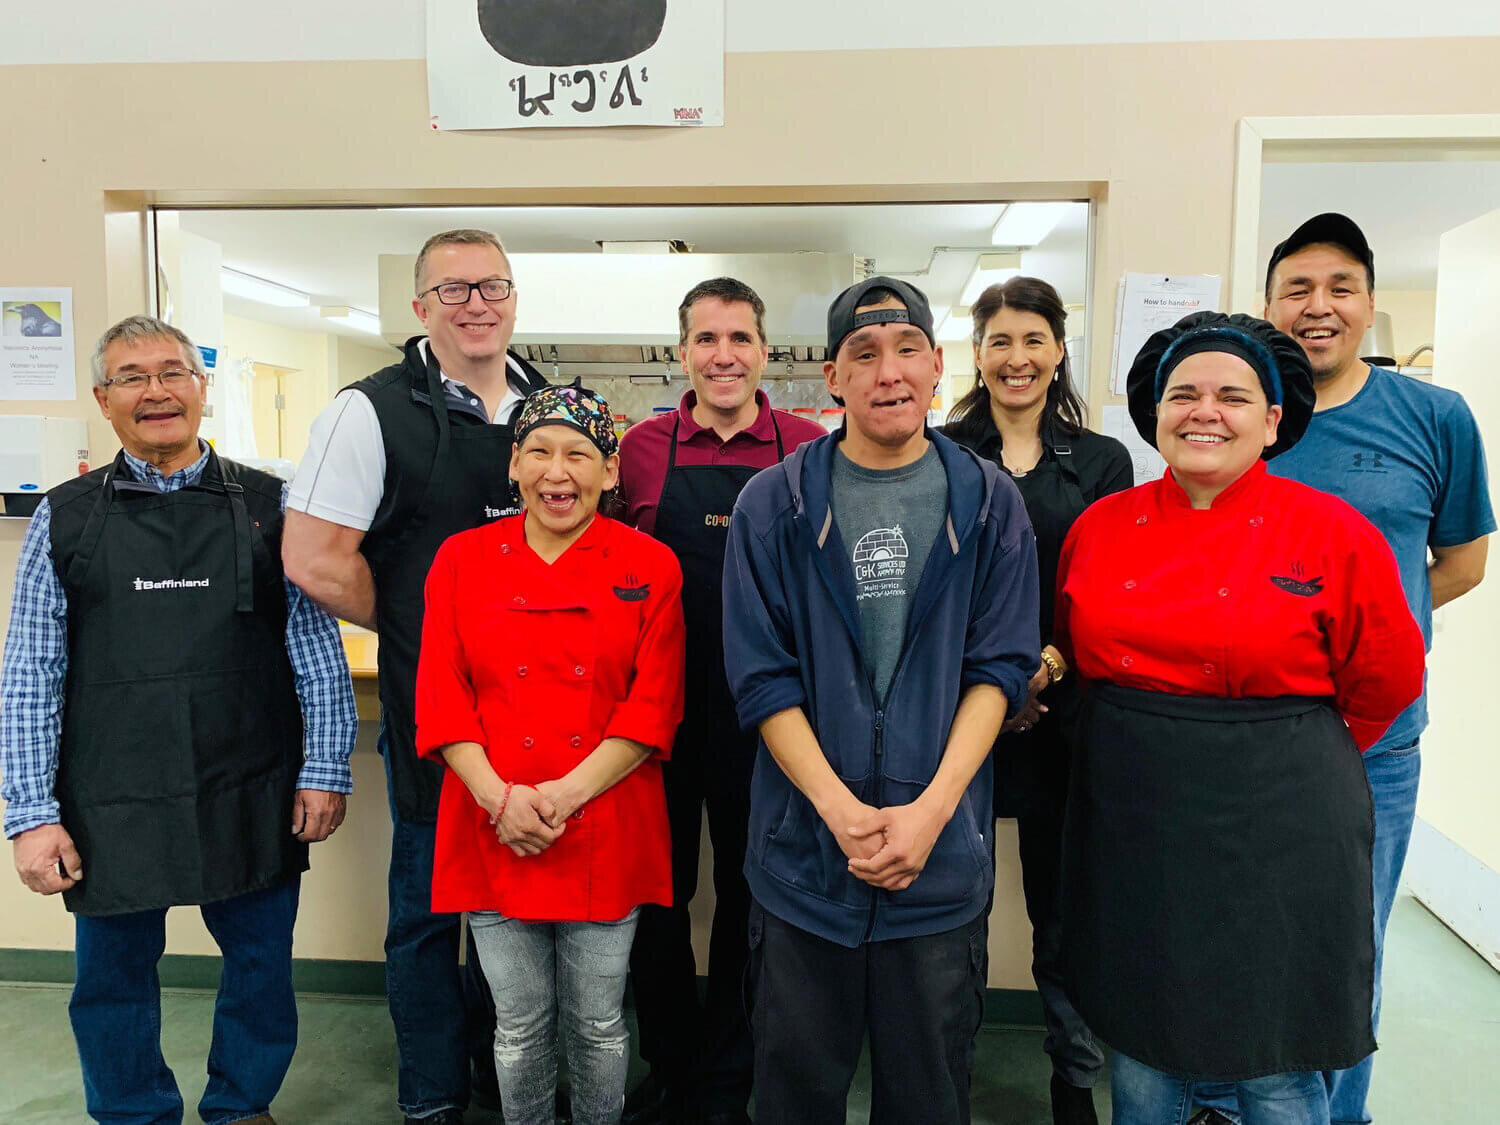 Brian Penny, Baffinland Iron Mines CEO, Duane Wilson, VP of Stakeholder Relations, Arctic Co-operatives Limited and Udlu Hanson, VP of Community & Strategic Development. Front right: Chef Trudy M. and several Baffinland employees.